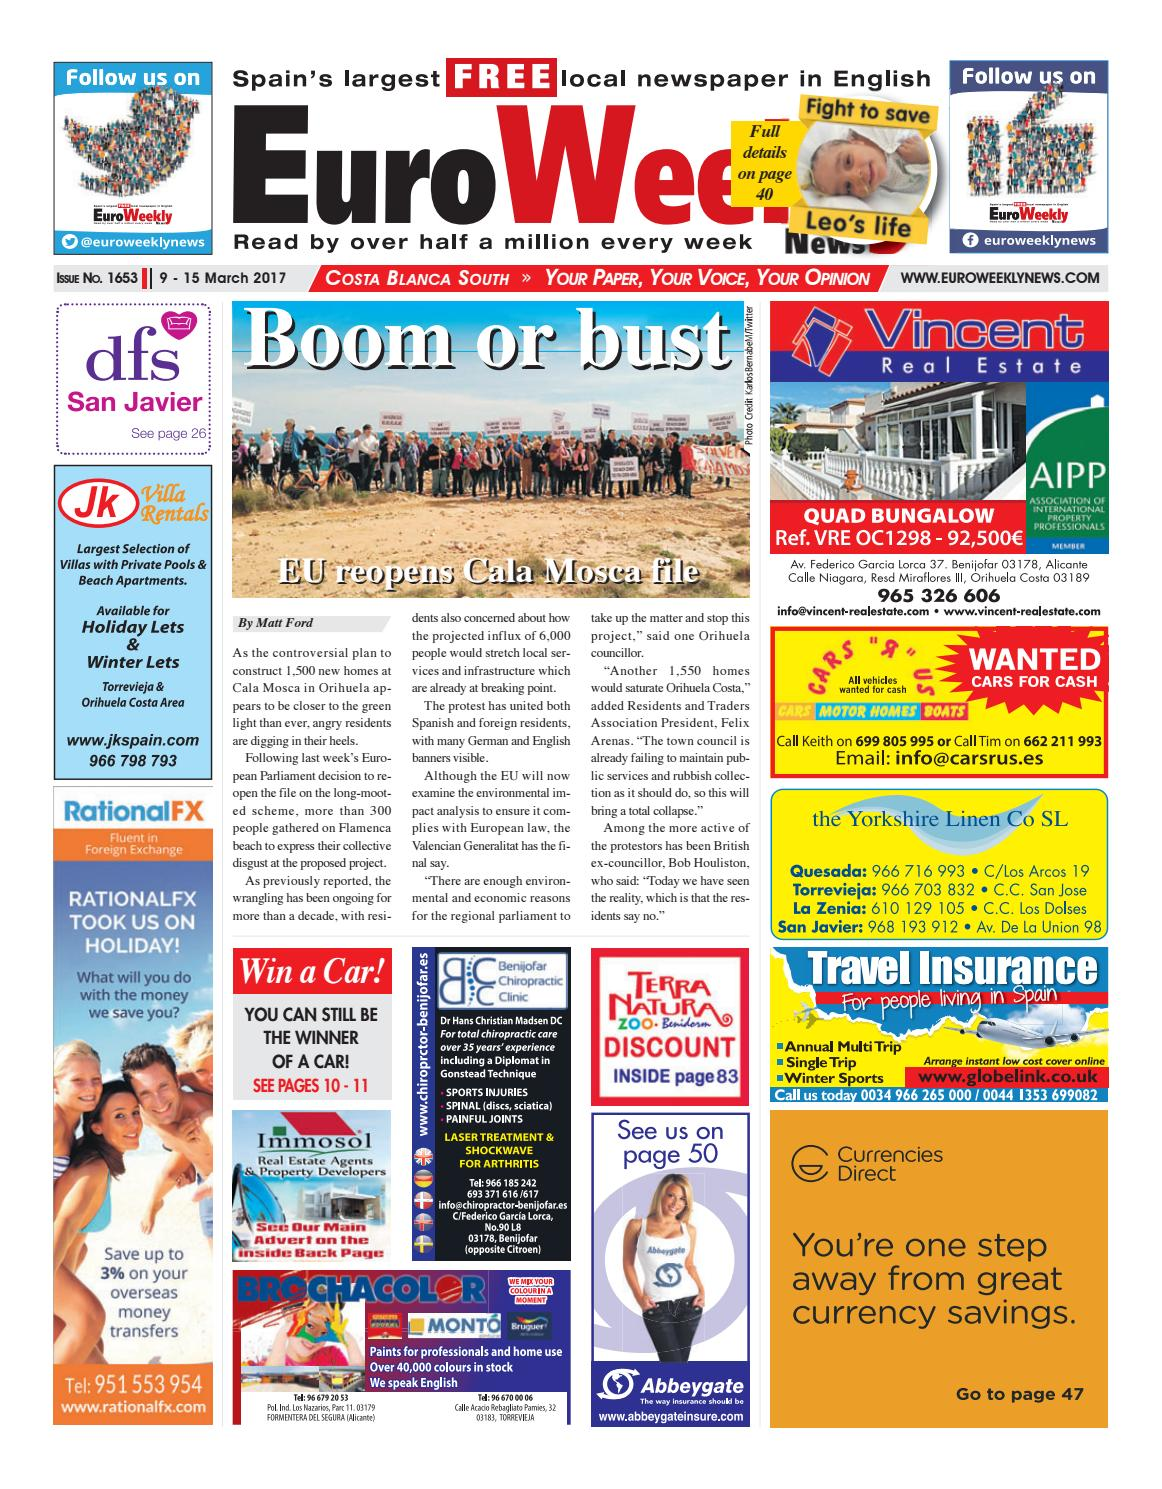 Euro Weekly News - Costa Blanca South 9 - 15 March 2017